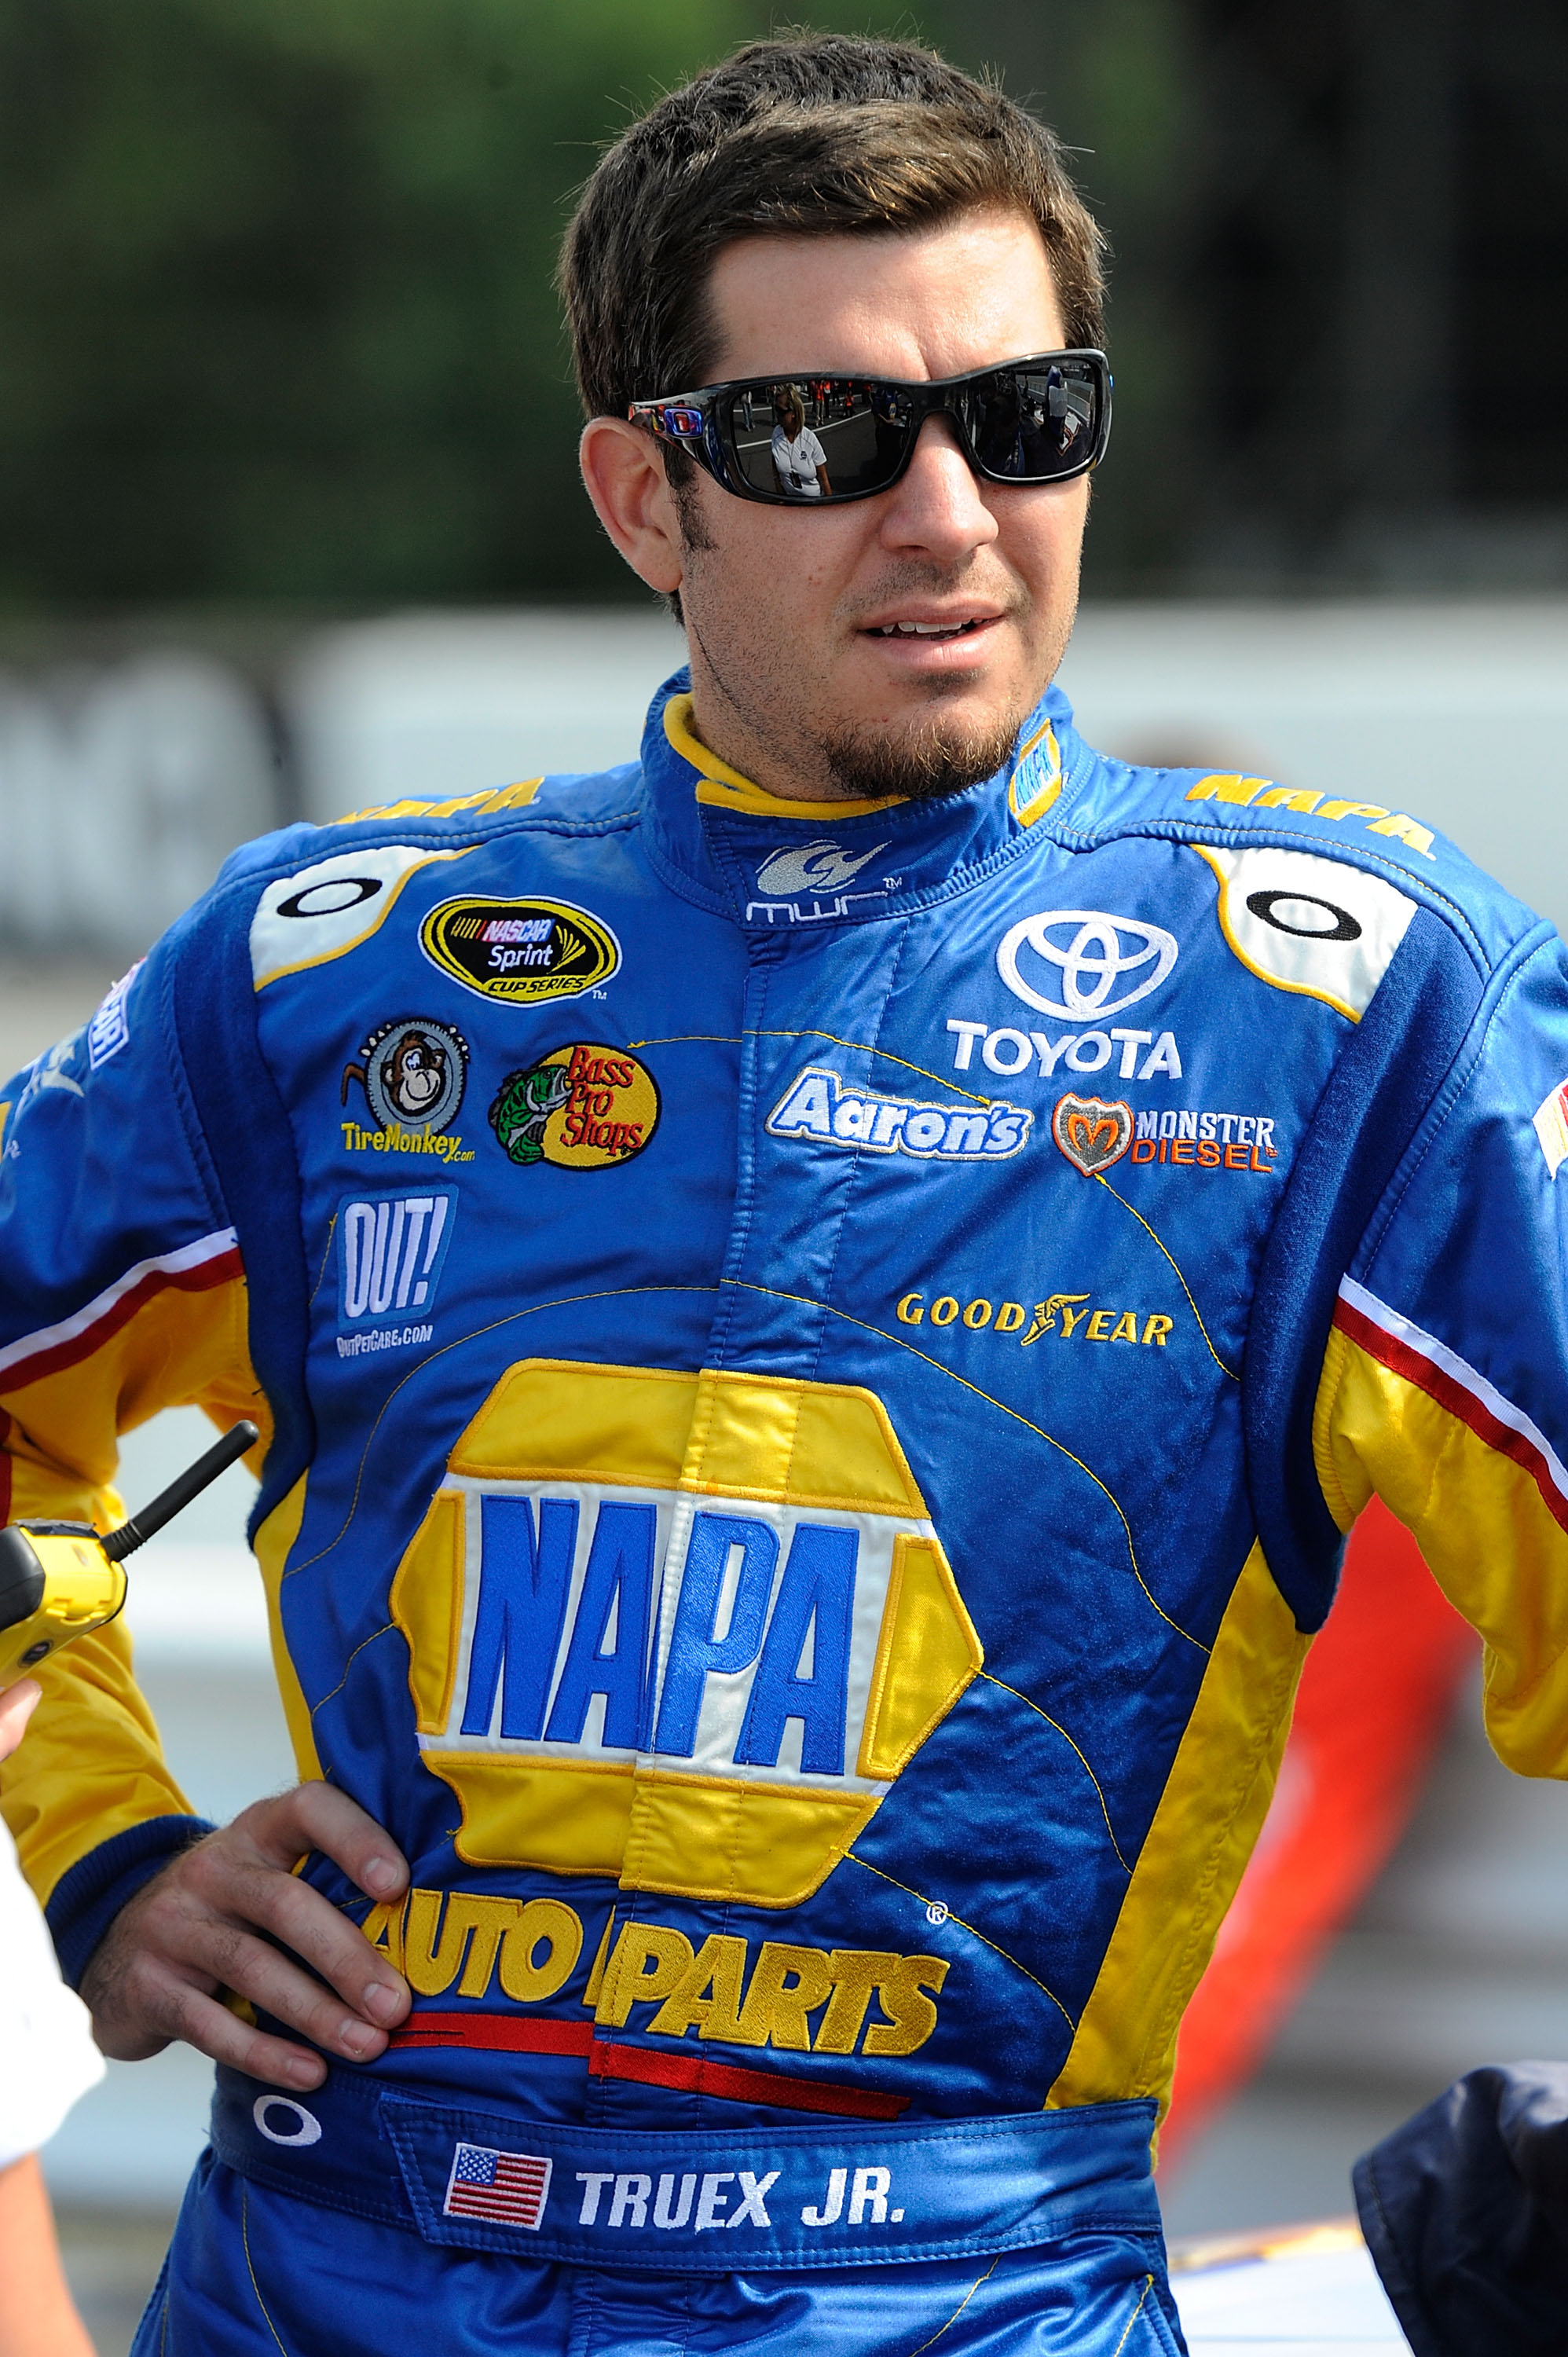 LONG POND, PA - JULY 30:  Martin Truex Jr., driver of the #56 NAPA Auto Parts Toyota, stands on the grid during qualifying for the NASCAR Sprint Cup Series Sunoco Red Cross Pennsylvania 500 at Pocono Raceway on July 30, 2010 in Long Pond, Pennsylvania.  (